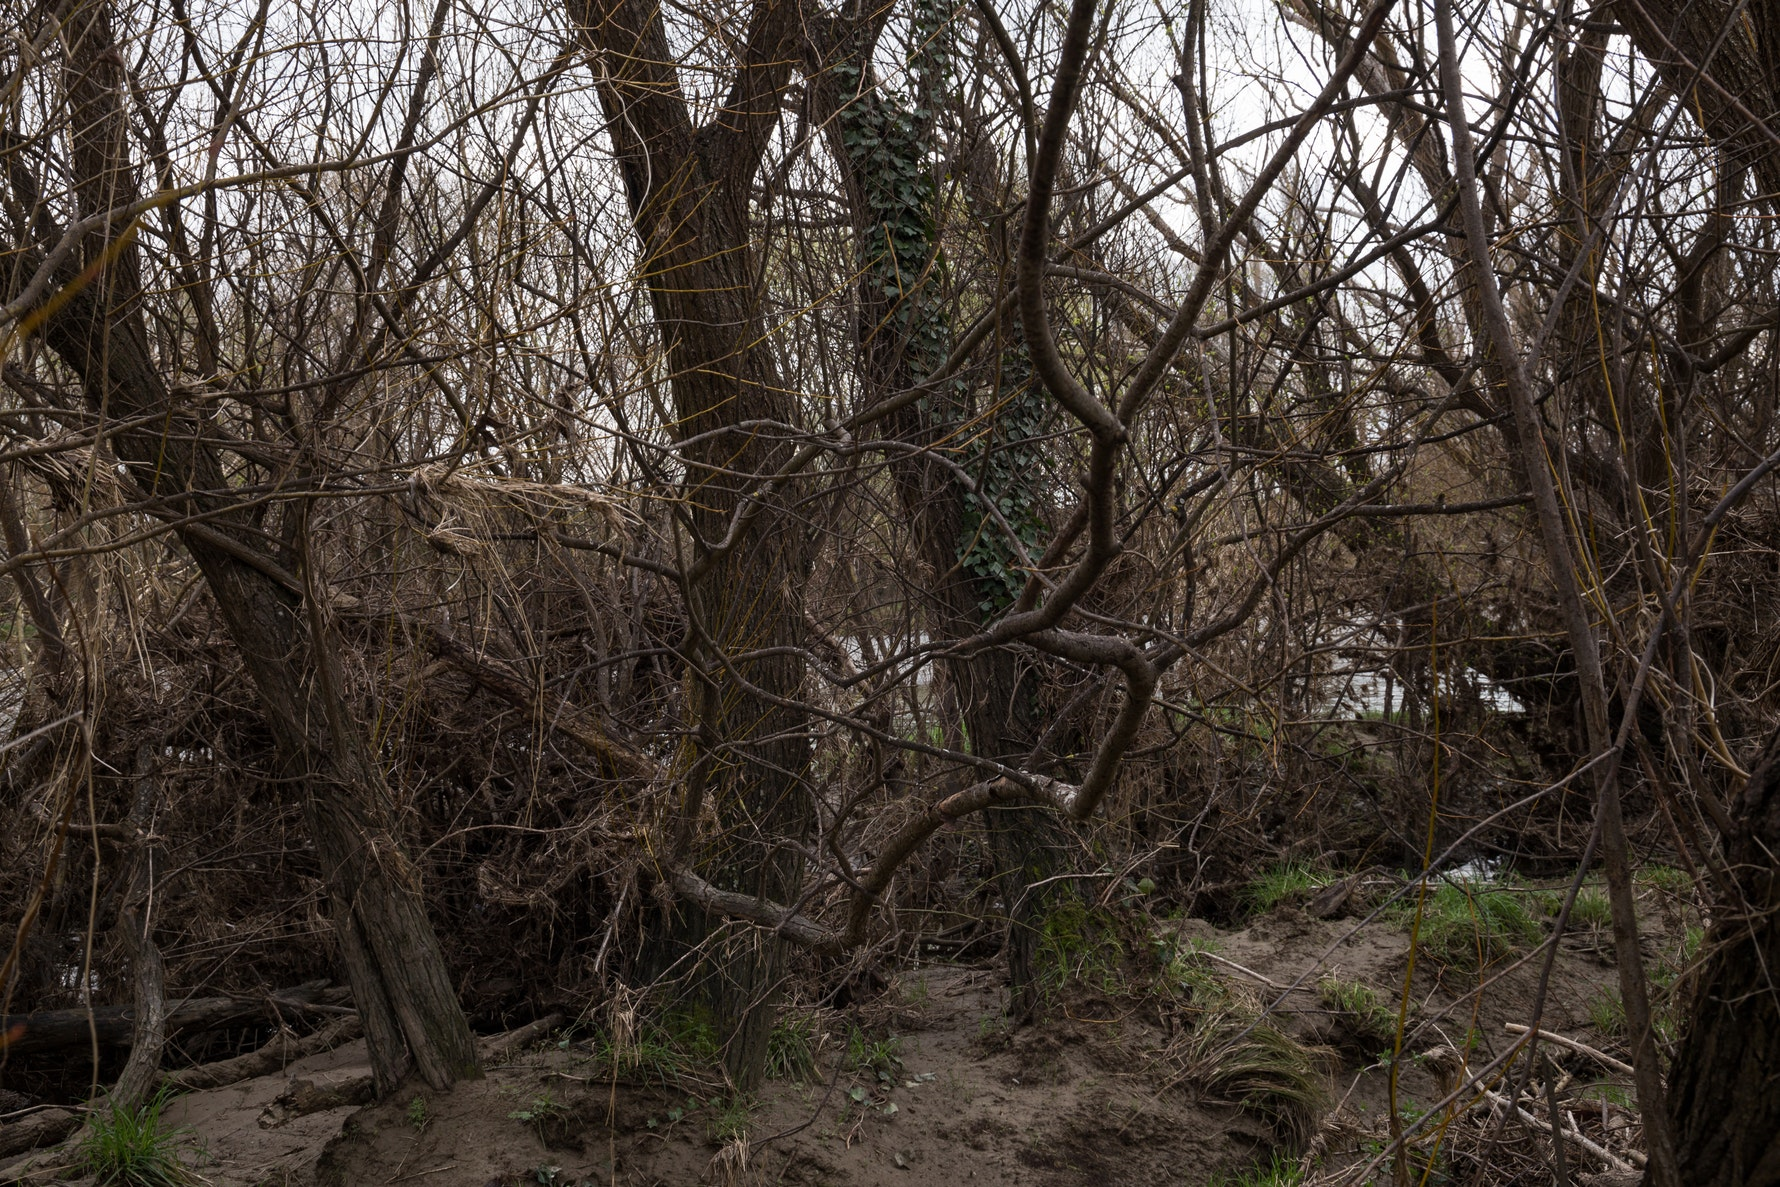 Tangle of Branches After Flood, Chamberlains Ford